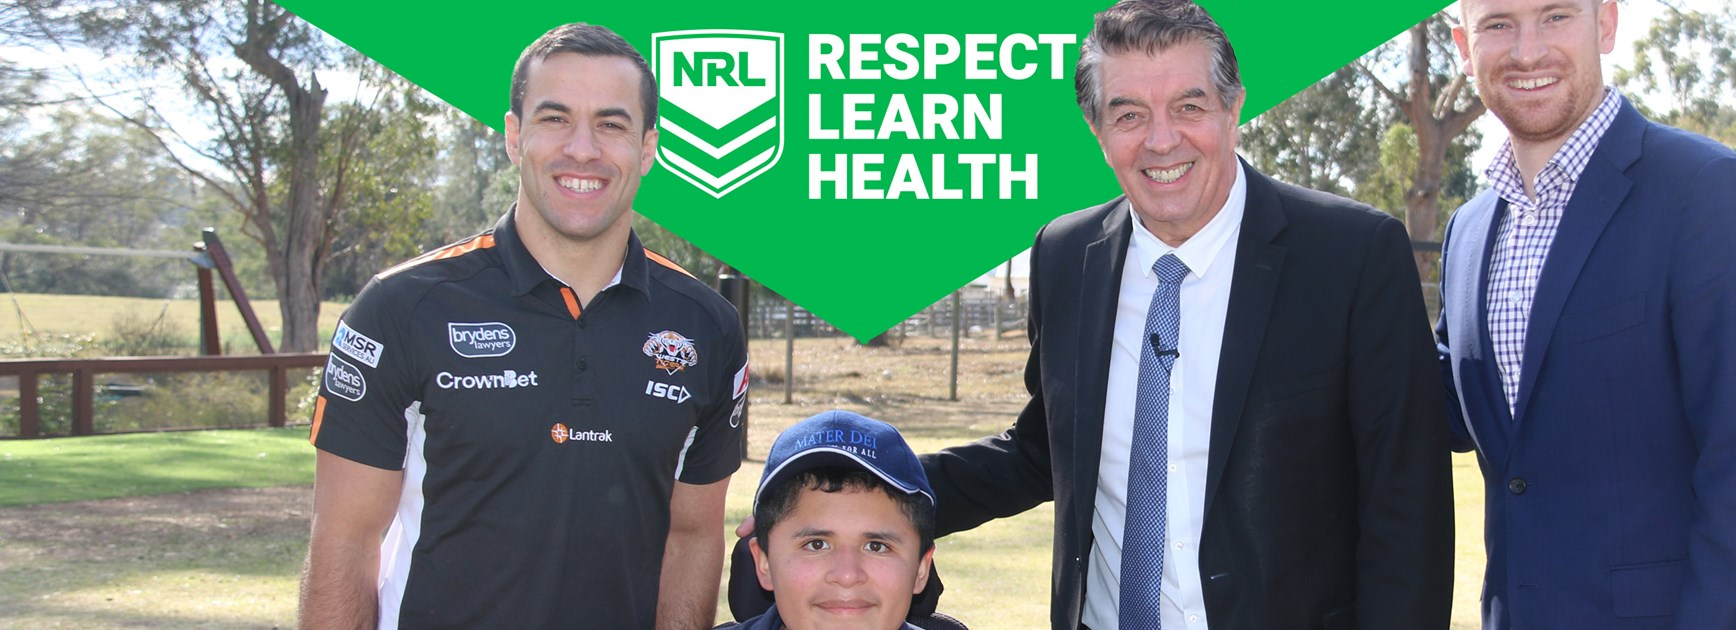 Wests Tigers break down barriers to win community award